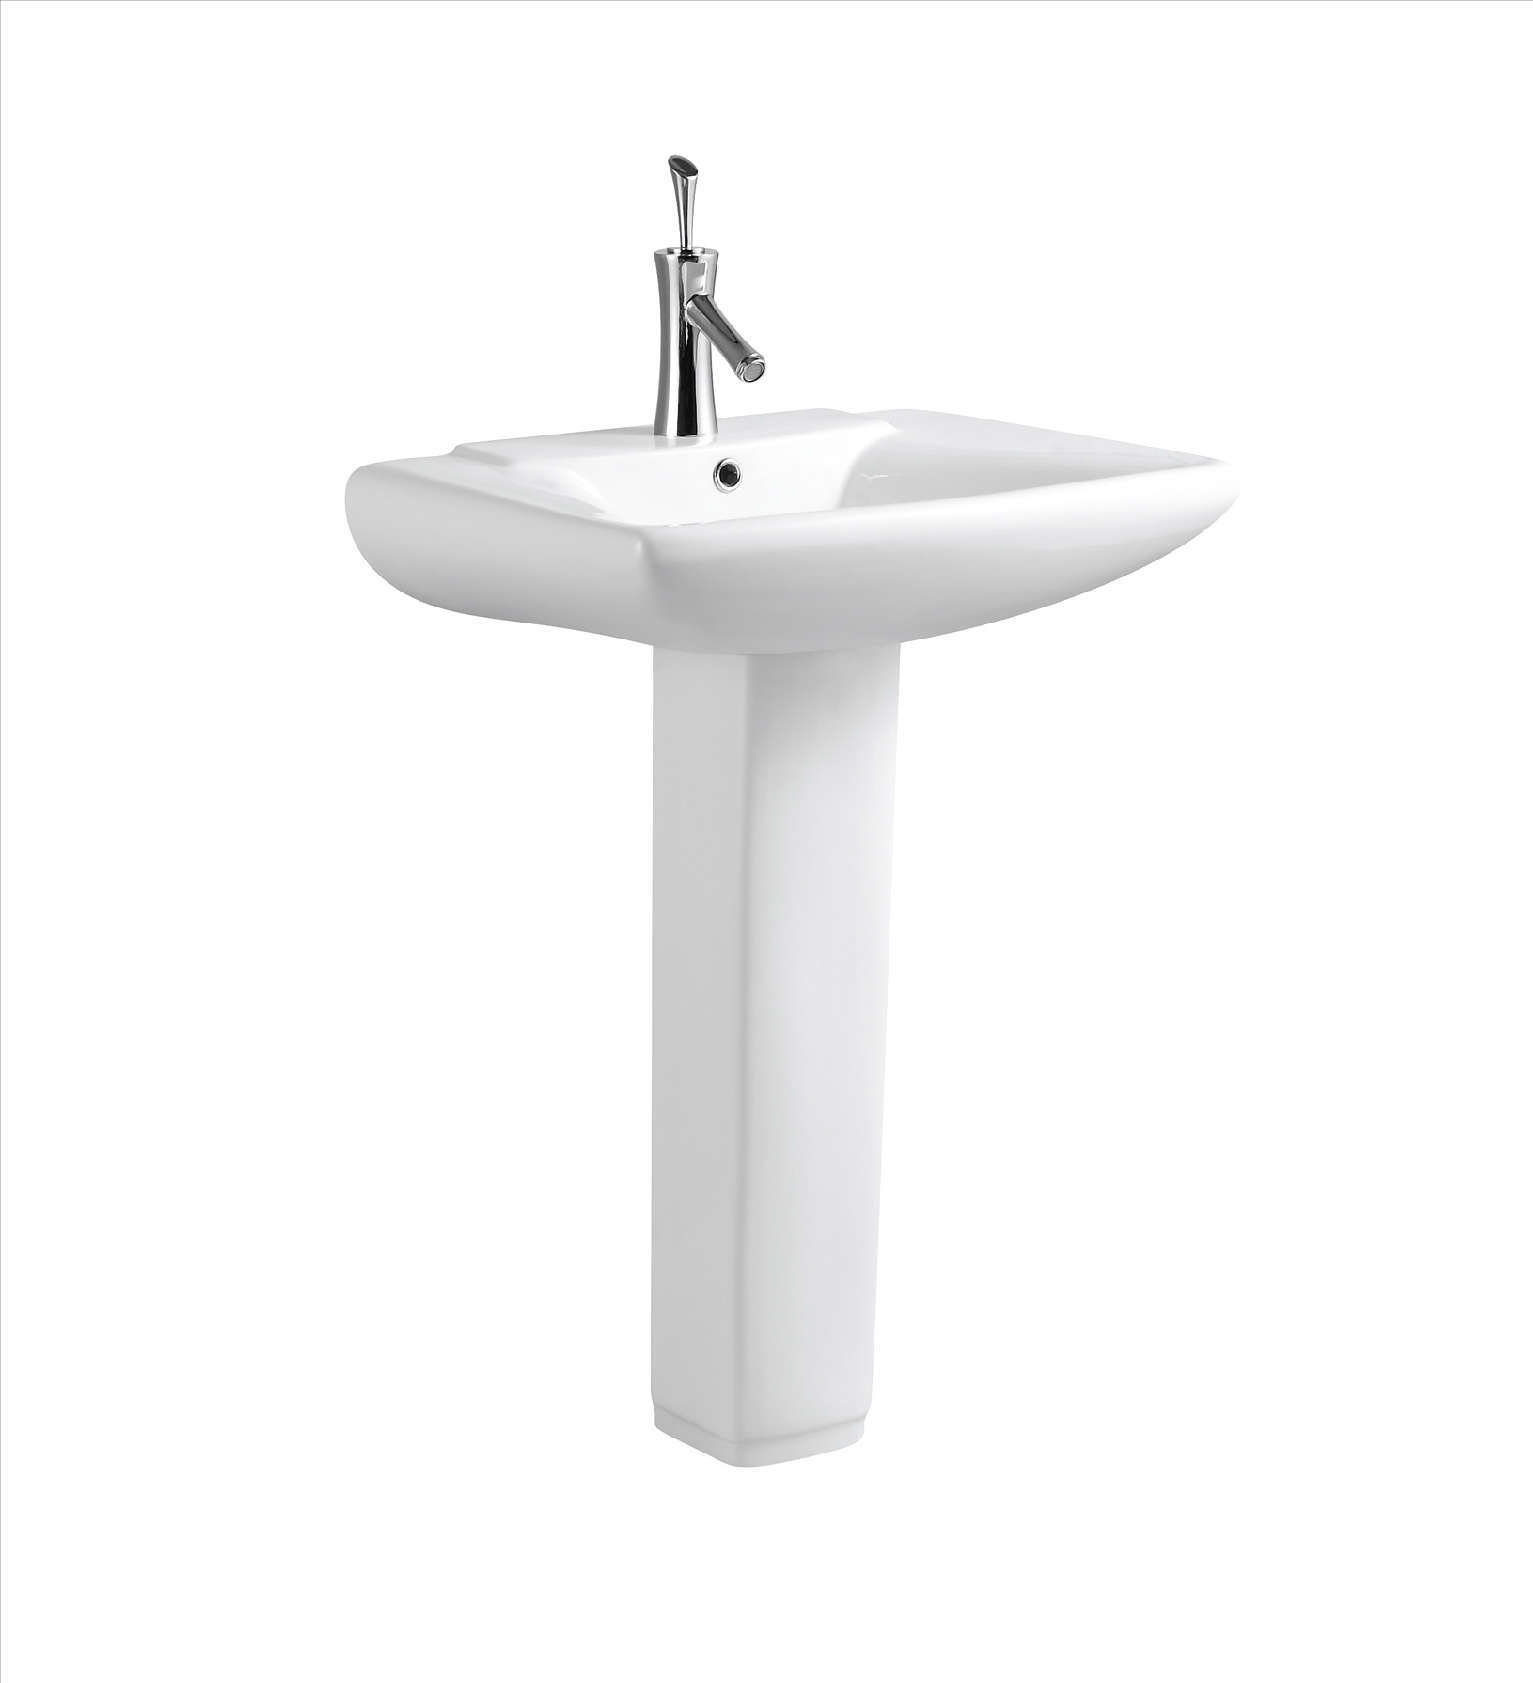 Industrial Pedestal Sink Wash Basin Sink Bing Images